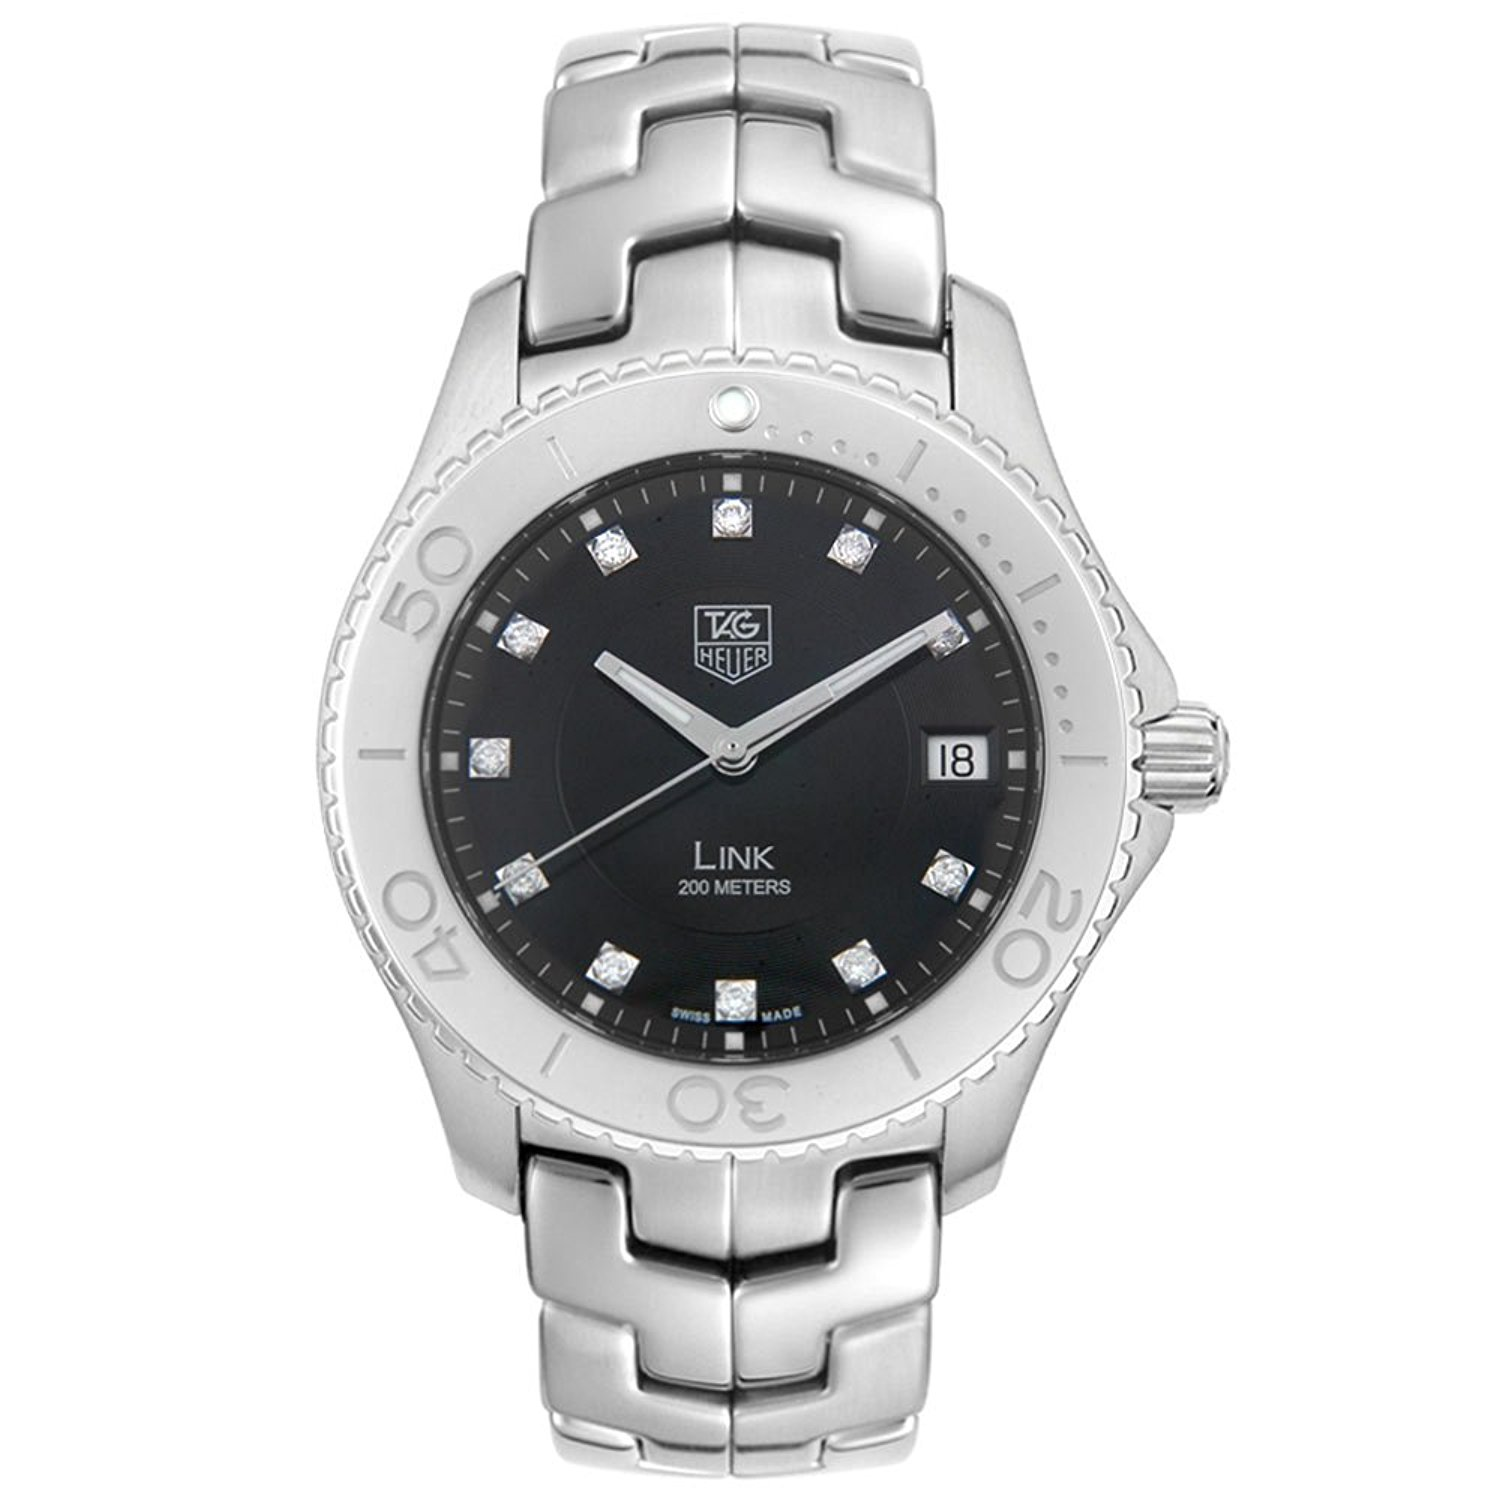 TAG Heuer Men's WJ1113.BA0570 Link Diamond Accented Stainless Steel Watch